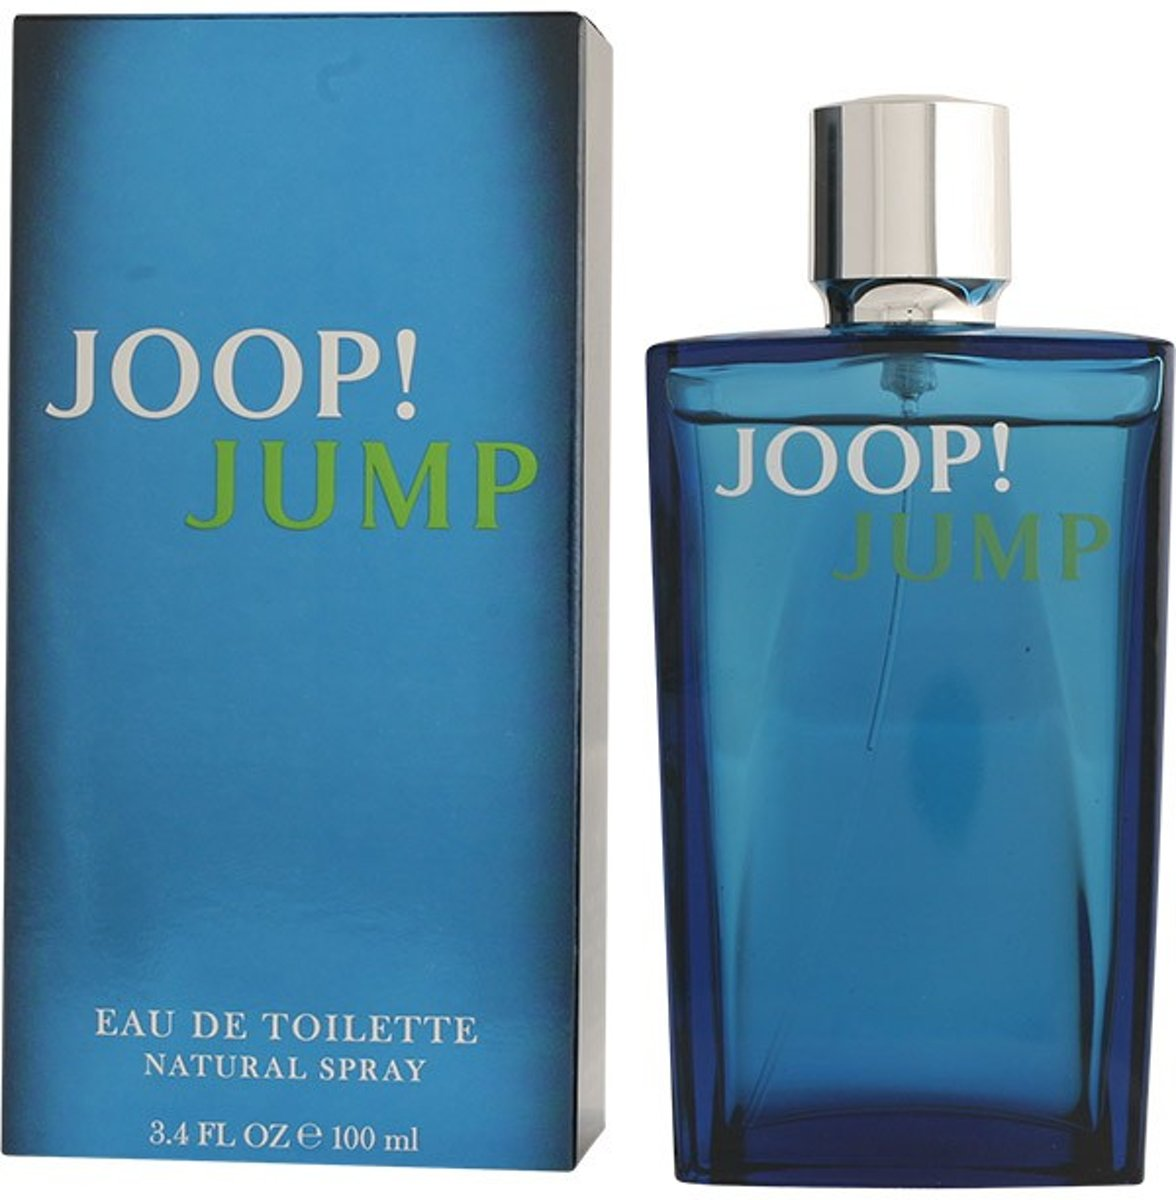 MULTI BUNDEL 2 stuks JOOP JUMP Eau de Toilette Spray 100 ml